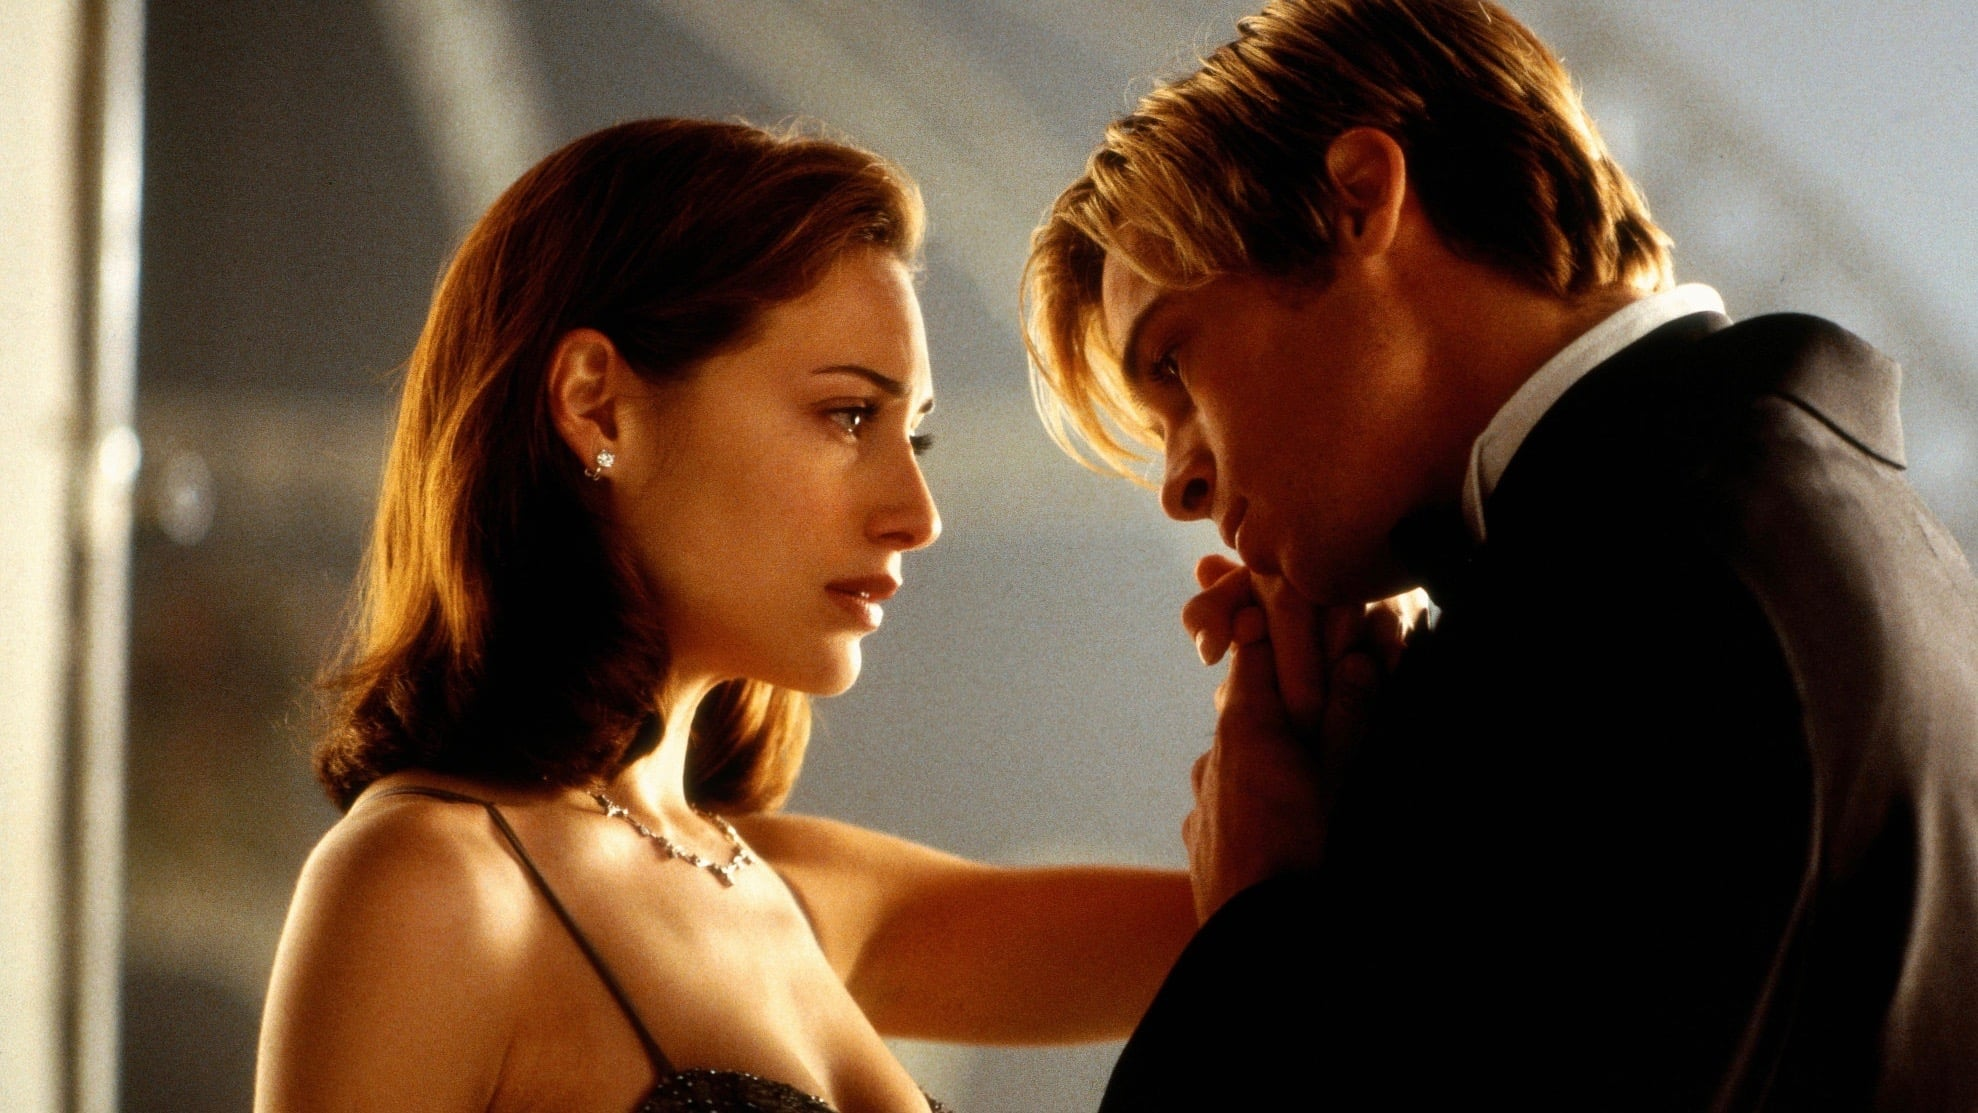 a summary of meet joe black a movie Refunds + exchanges bypass the box office line at many theaters with guaranteed tickets if something comes up, you can return or exchange up to two hours before showtime through fandango.